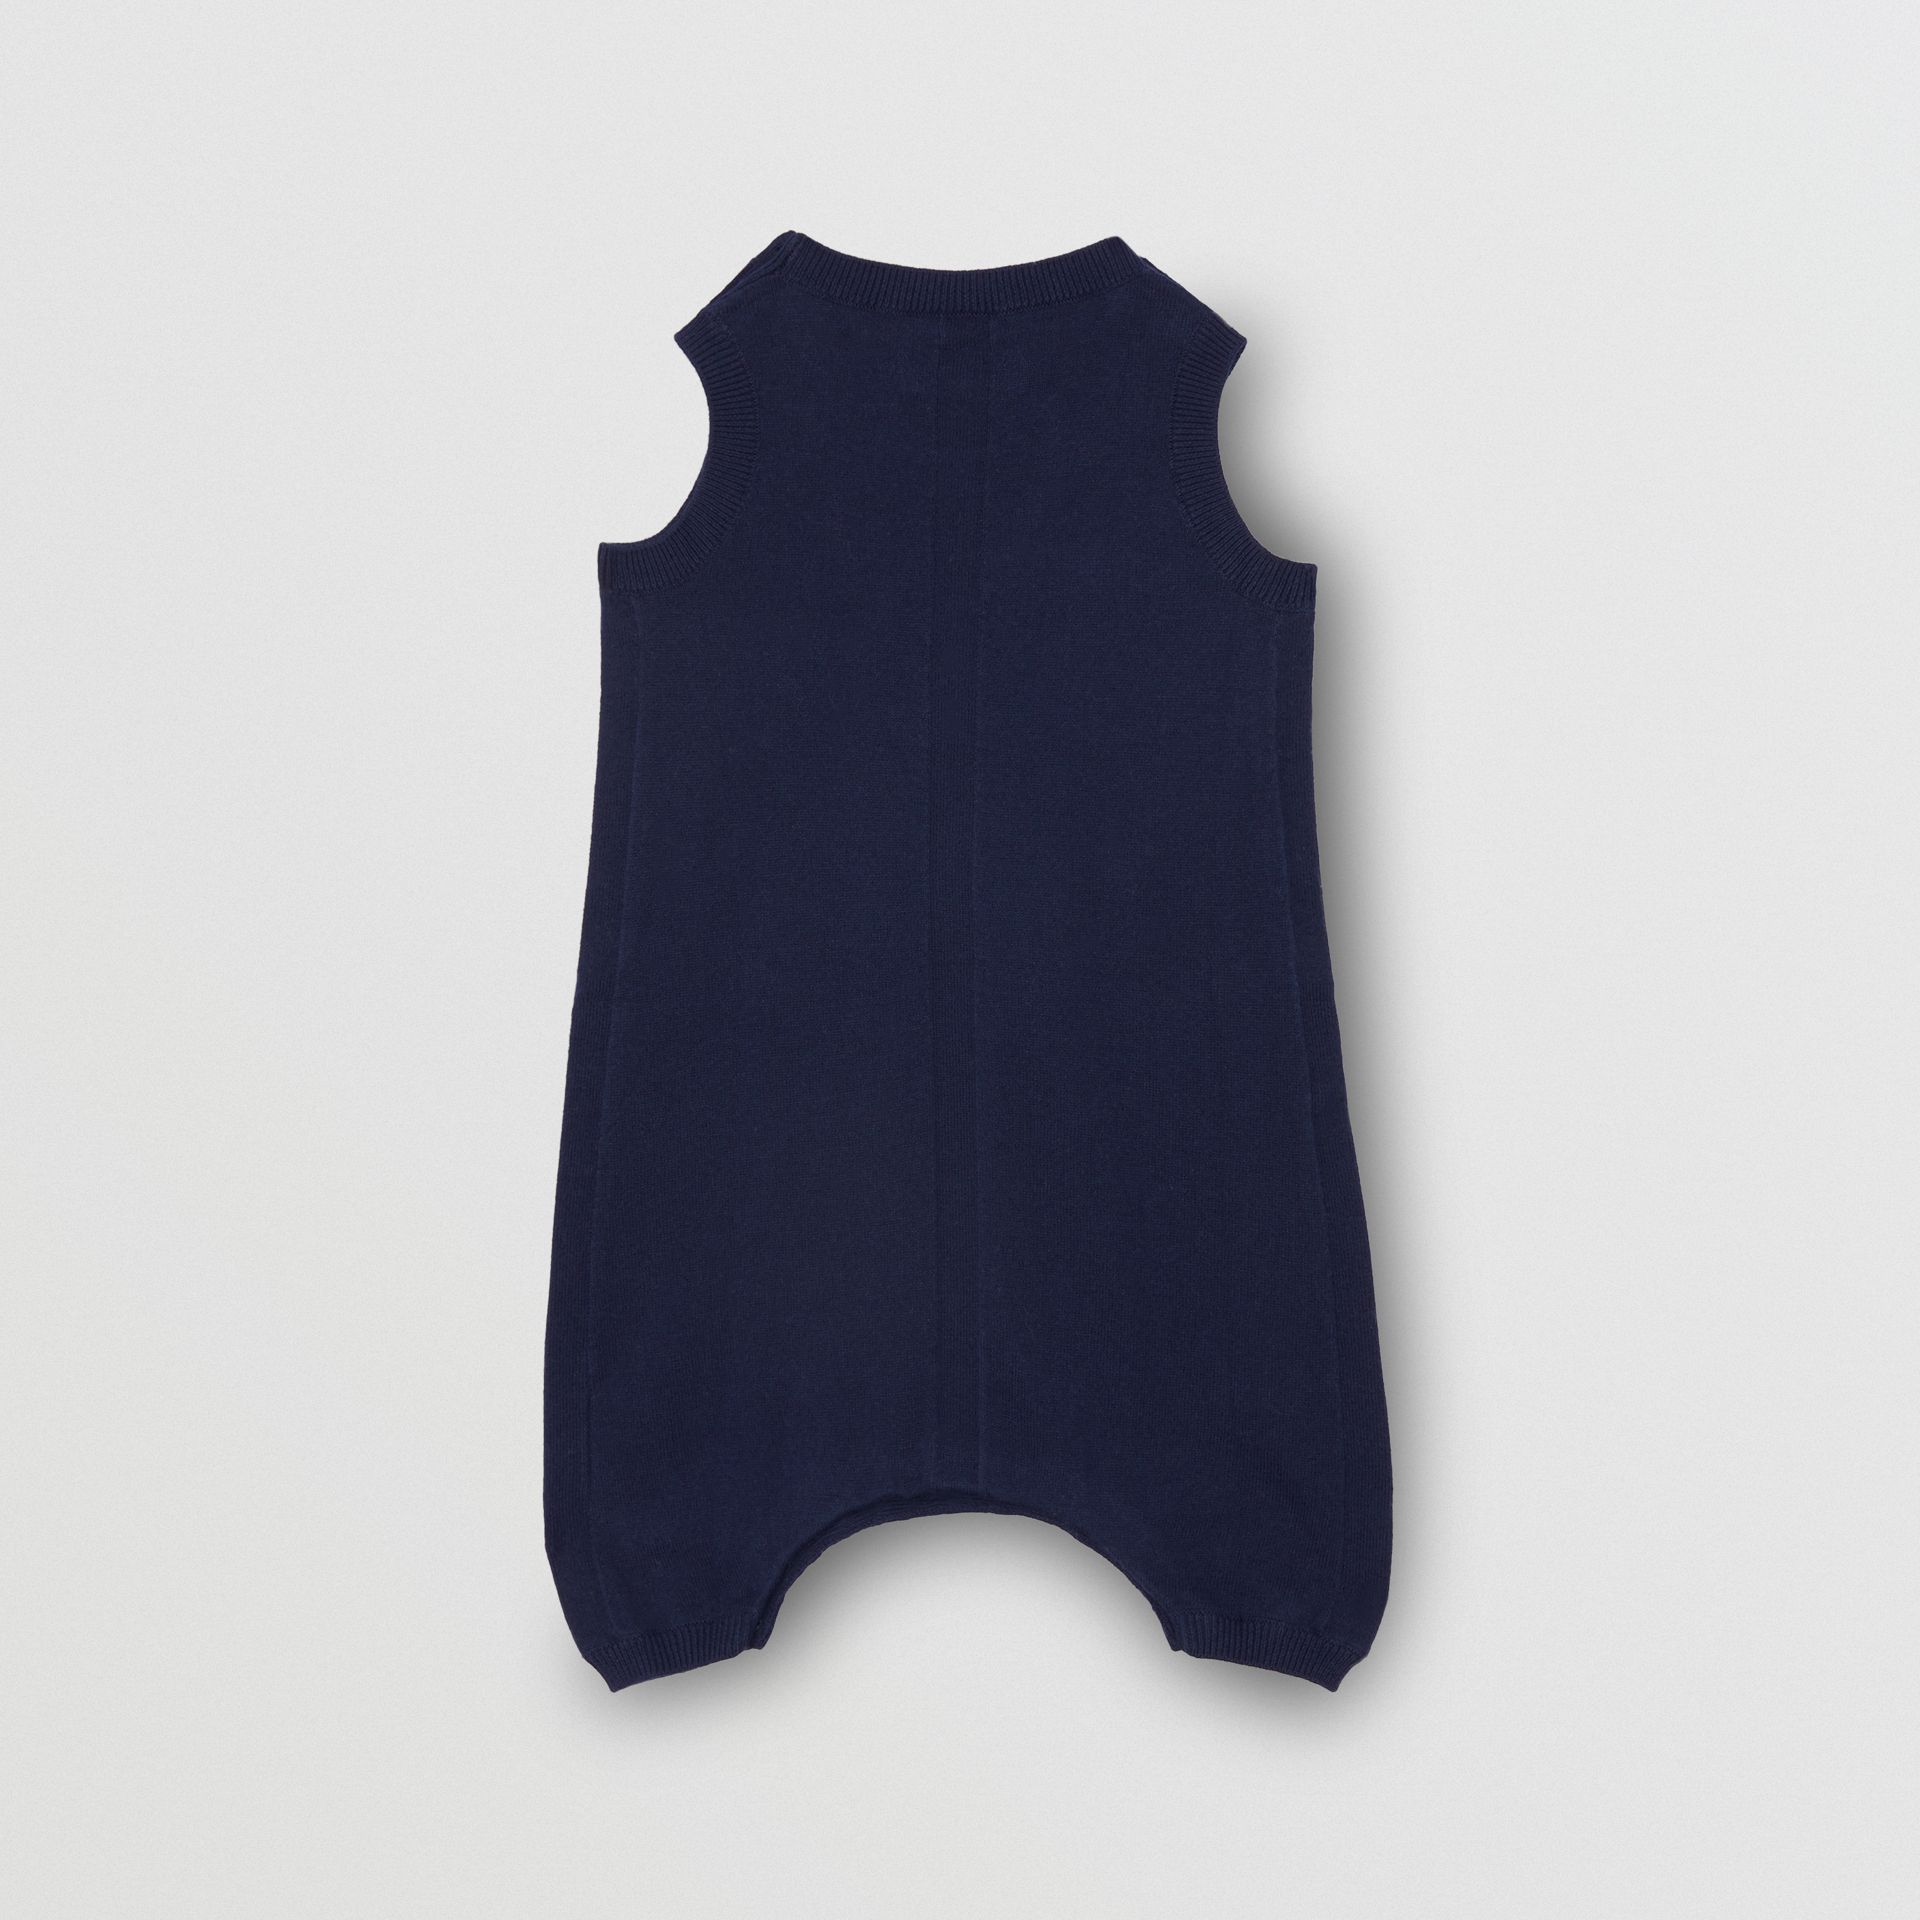 Logo Print Cotton Bodysuit in Indigo - Children | Burberry - gallery image 2